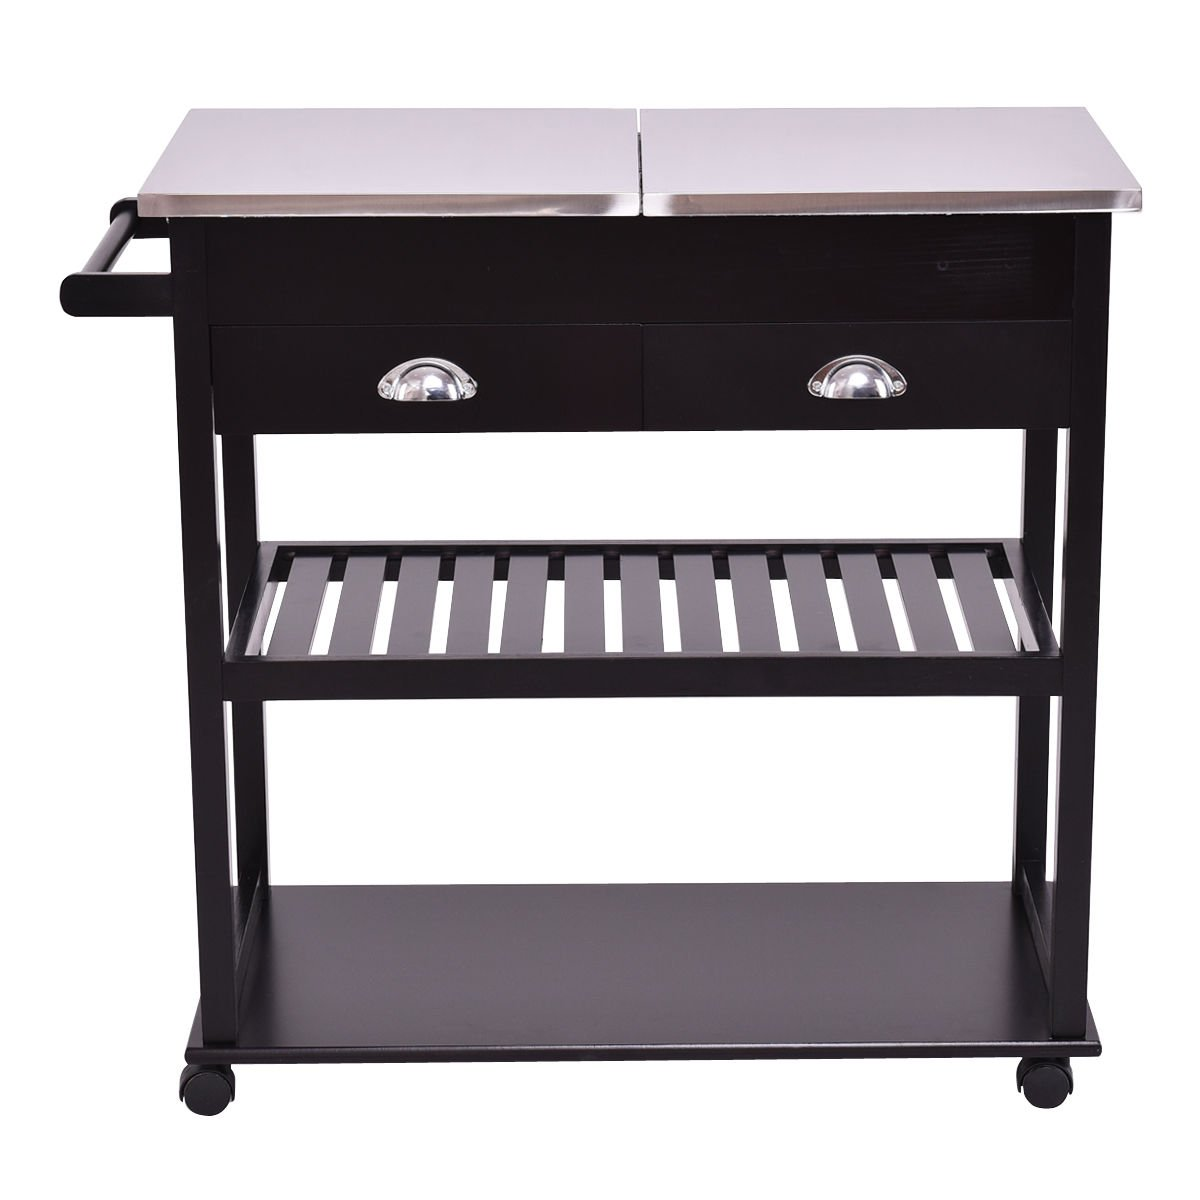 New Dark Brown Rolling Kitchen Trolley Cart Stainless Steel-Flip Top W/Drawers &Casters by totoshopkitchen